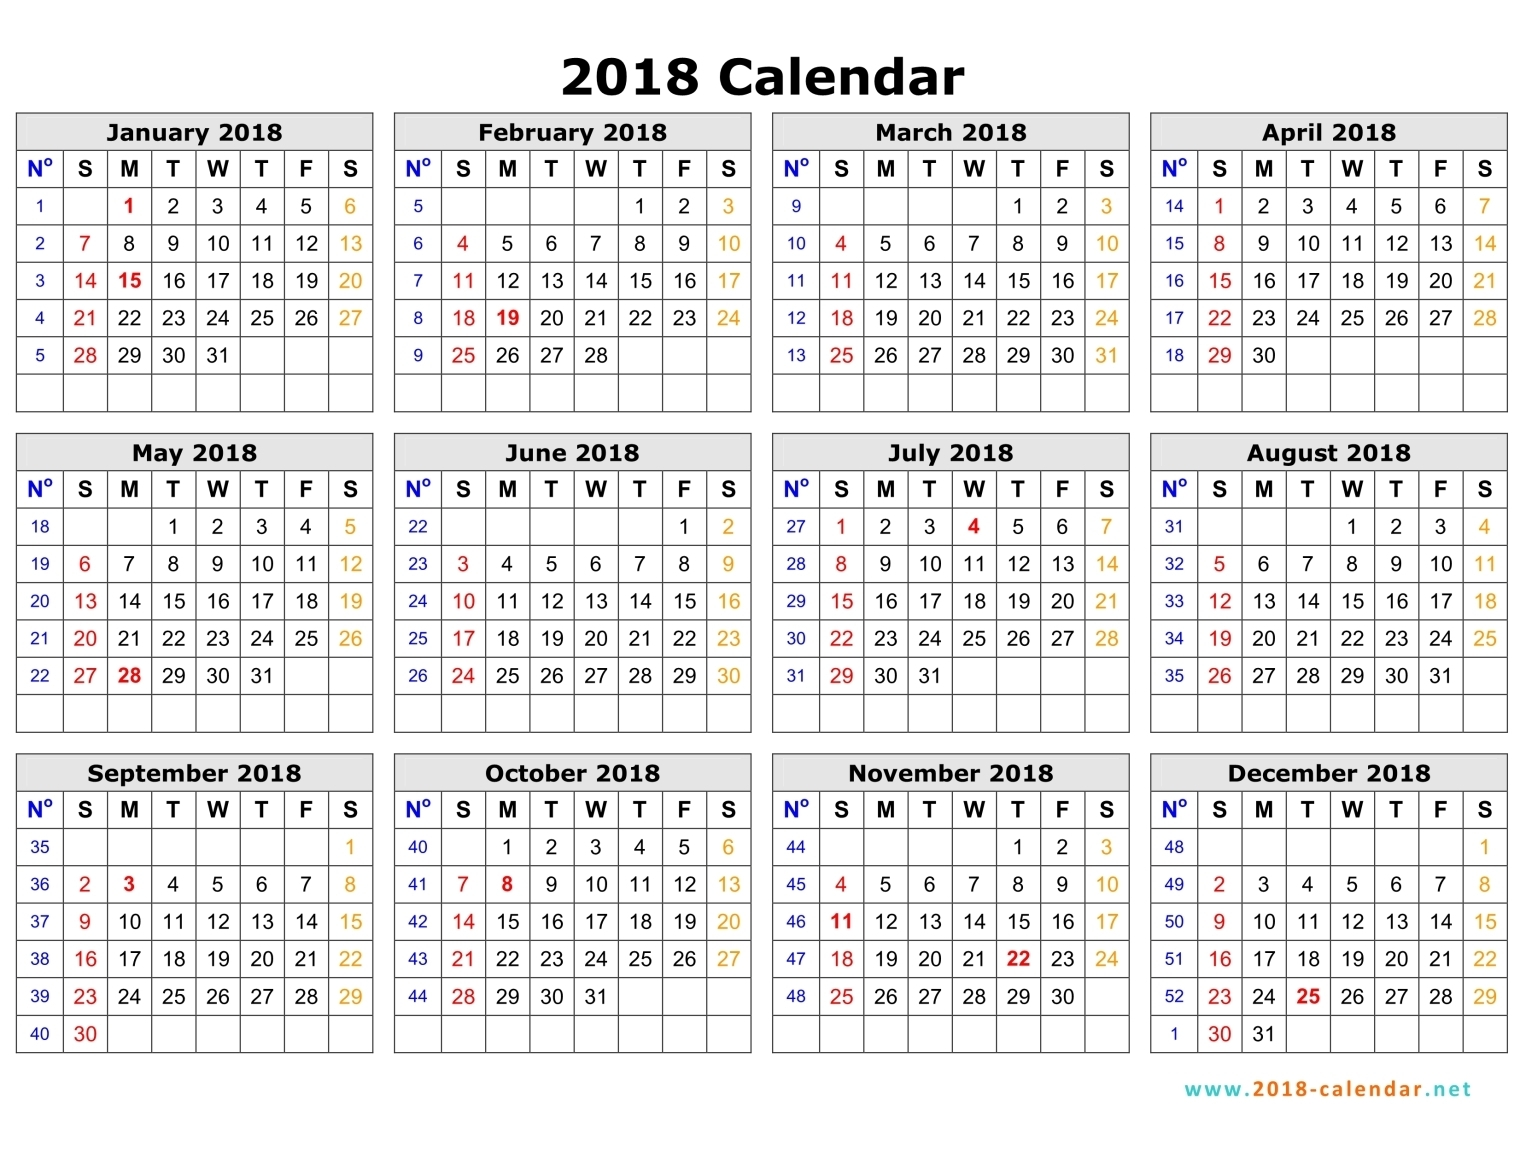 5 Day Week 2018 Calendar by Month : Mon. Thru Fri. Printable Full